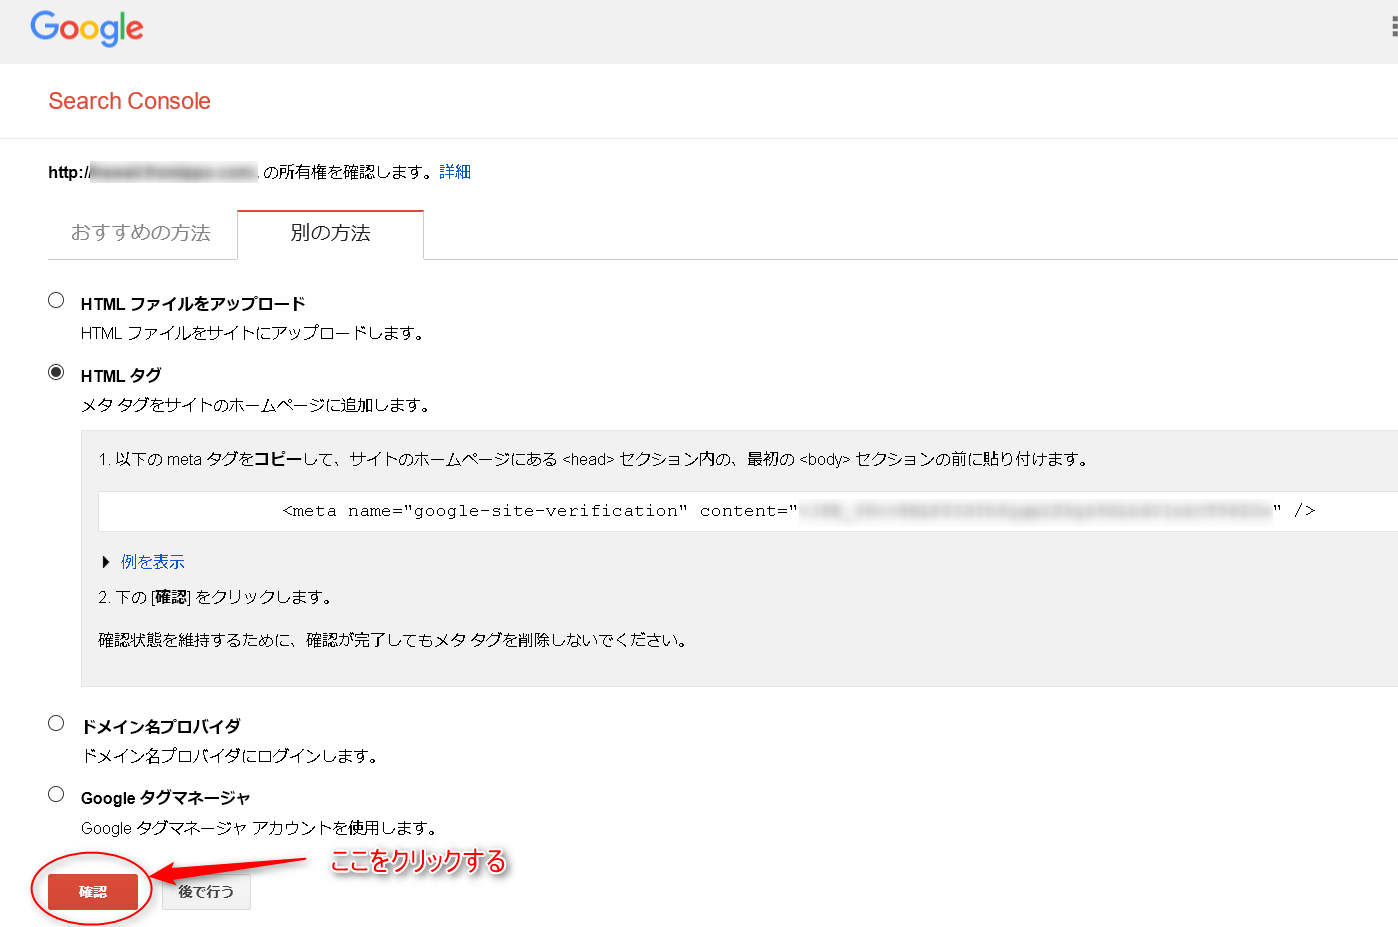 search console 確認ボタン